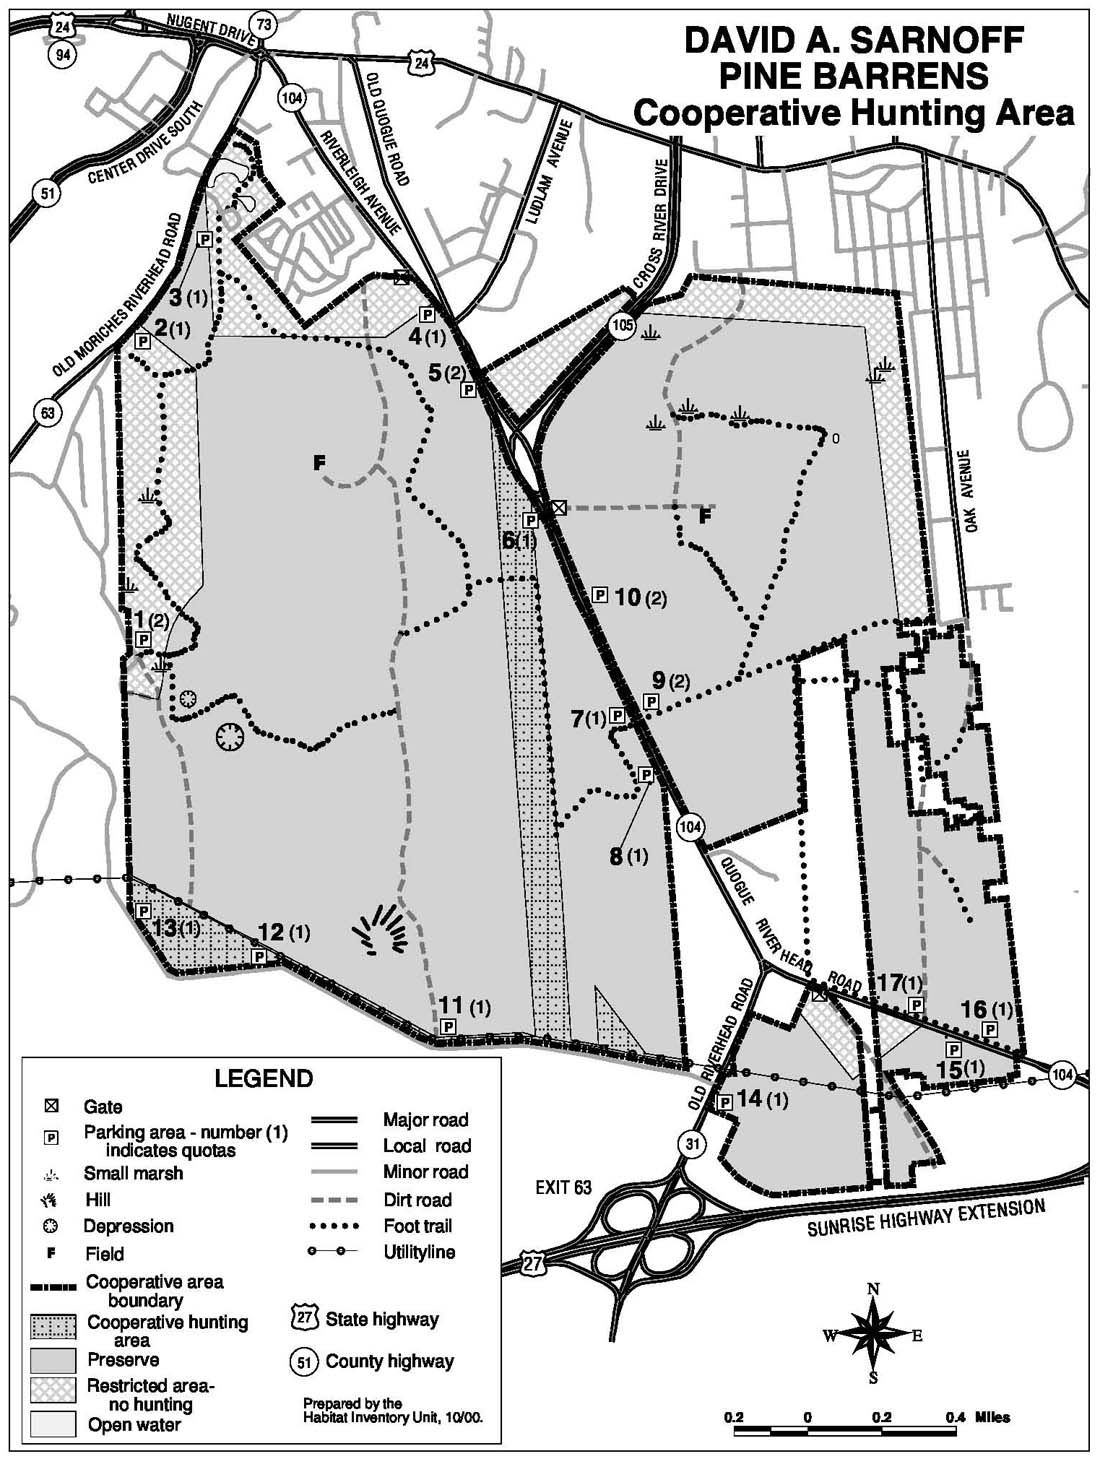 Map of hunting opportunities around the David A Sarnoff Pine Barrens